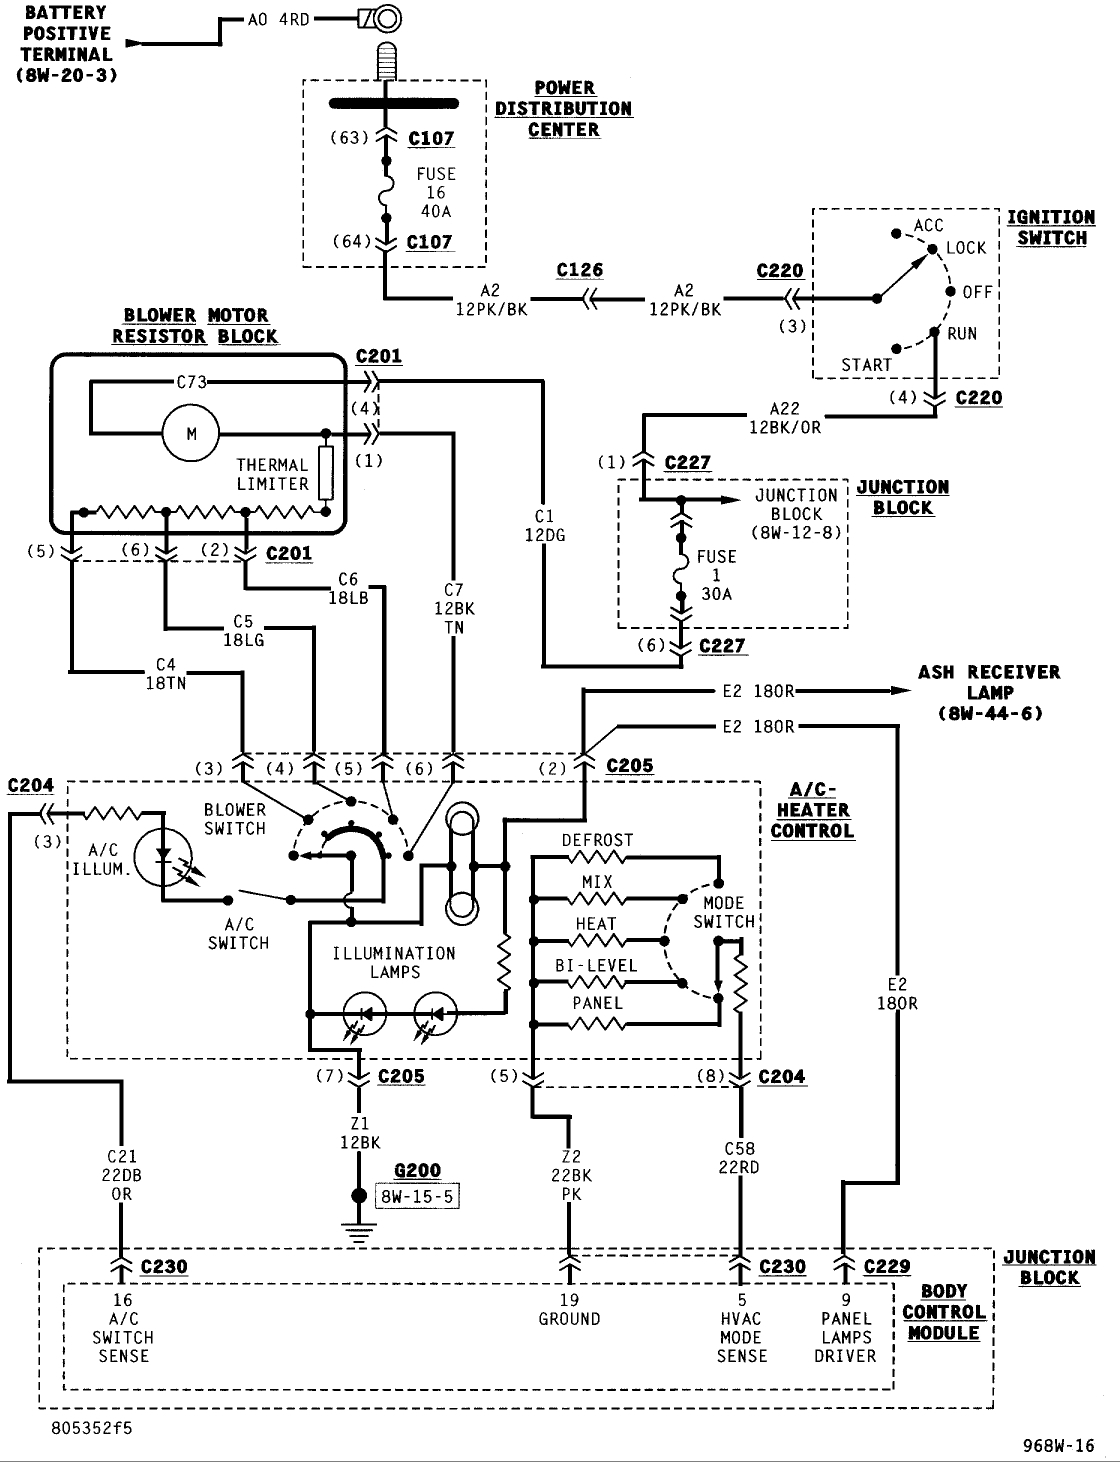 HVAC Mode Door Actuator: Is There any Way of Diagnosing